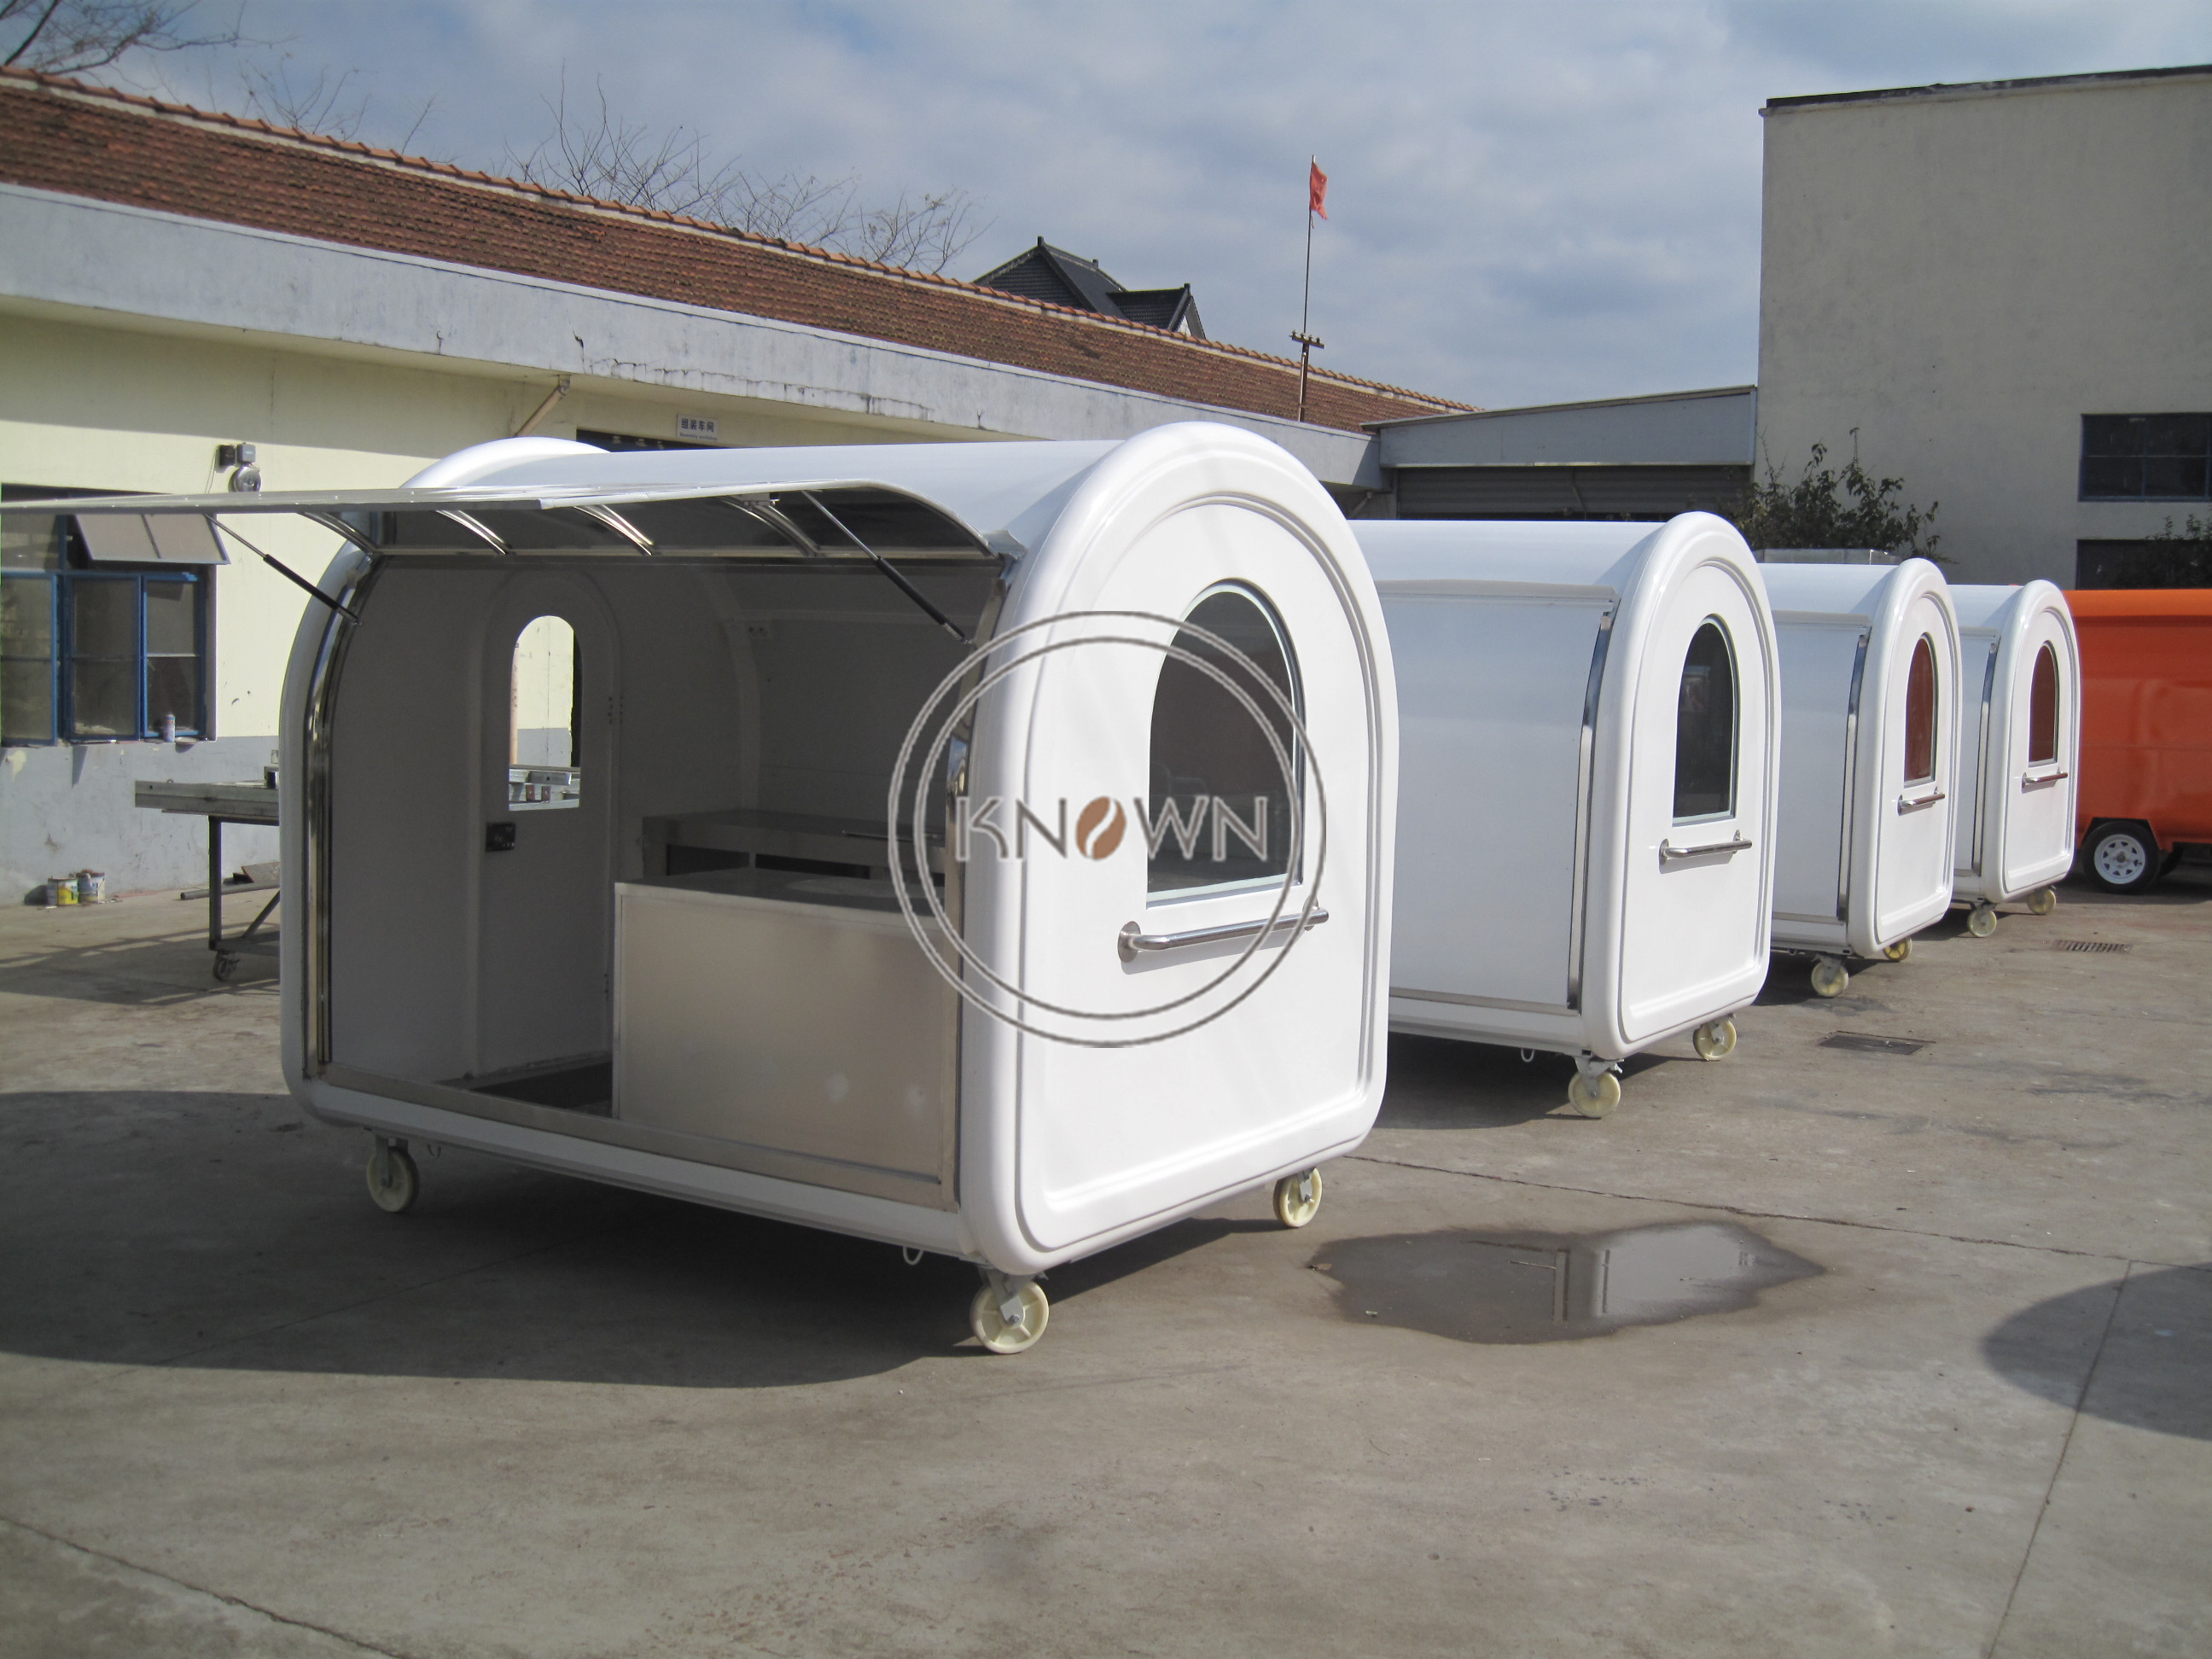 KN-280W 2.8m Length Fried Chicken Hot Dog Mobile Food Trucks for Sale Food Vending Carts